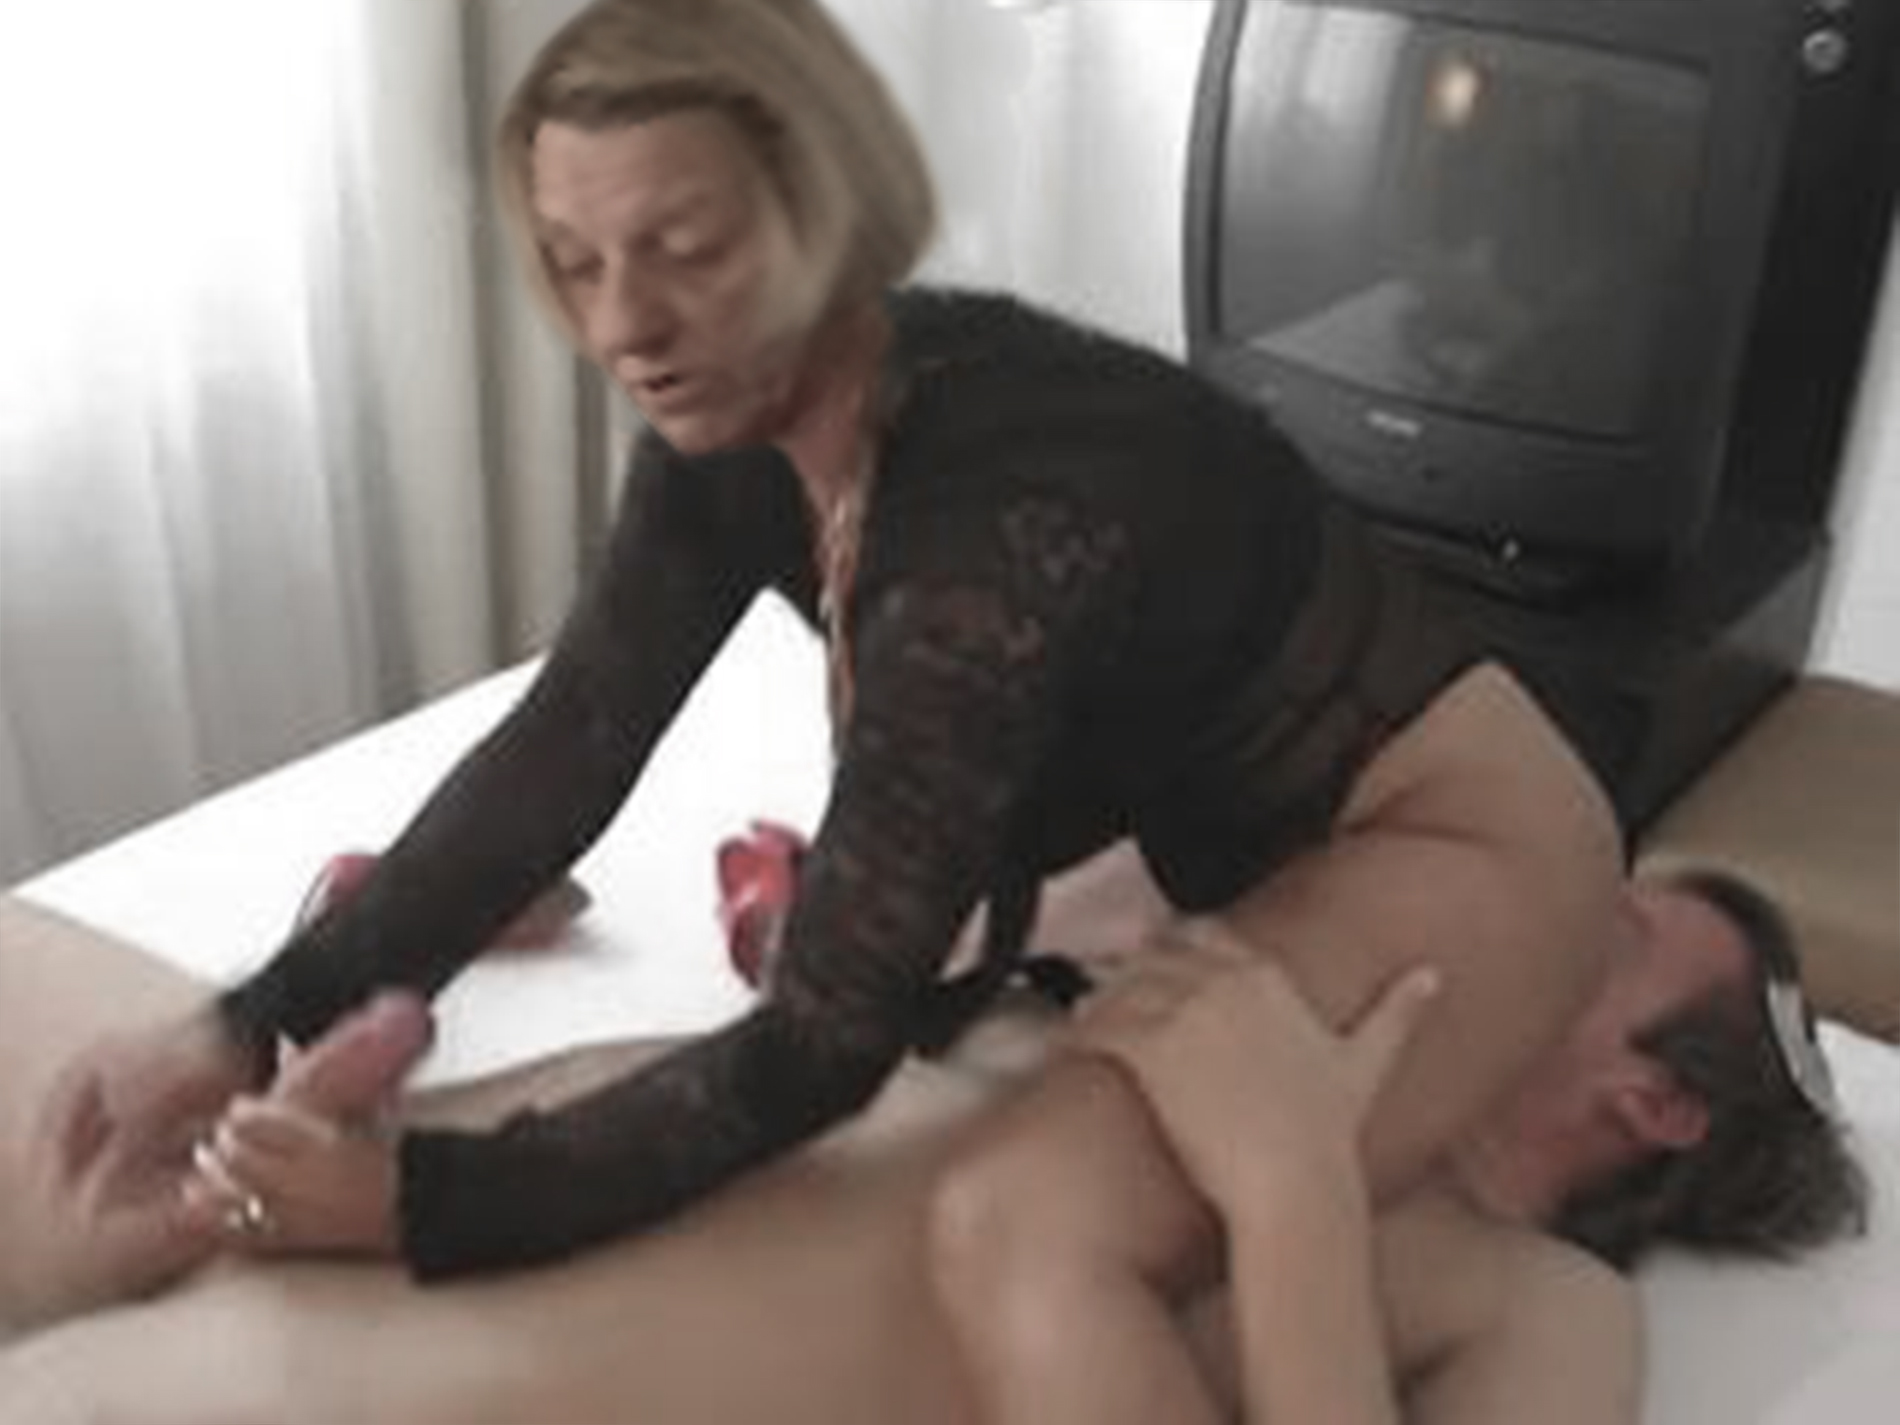 Can, jerk off mother curious